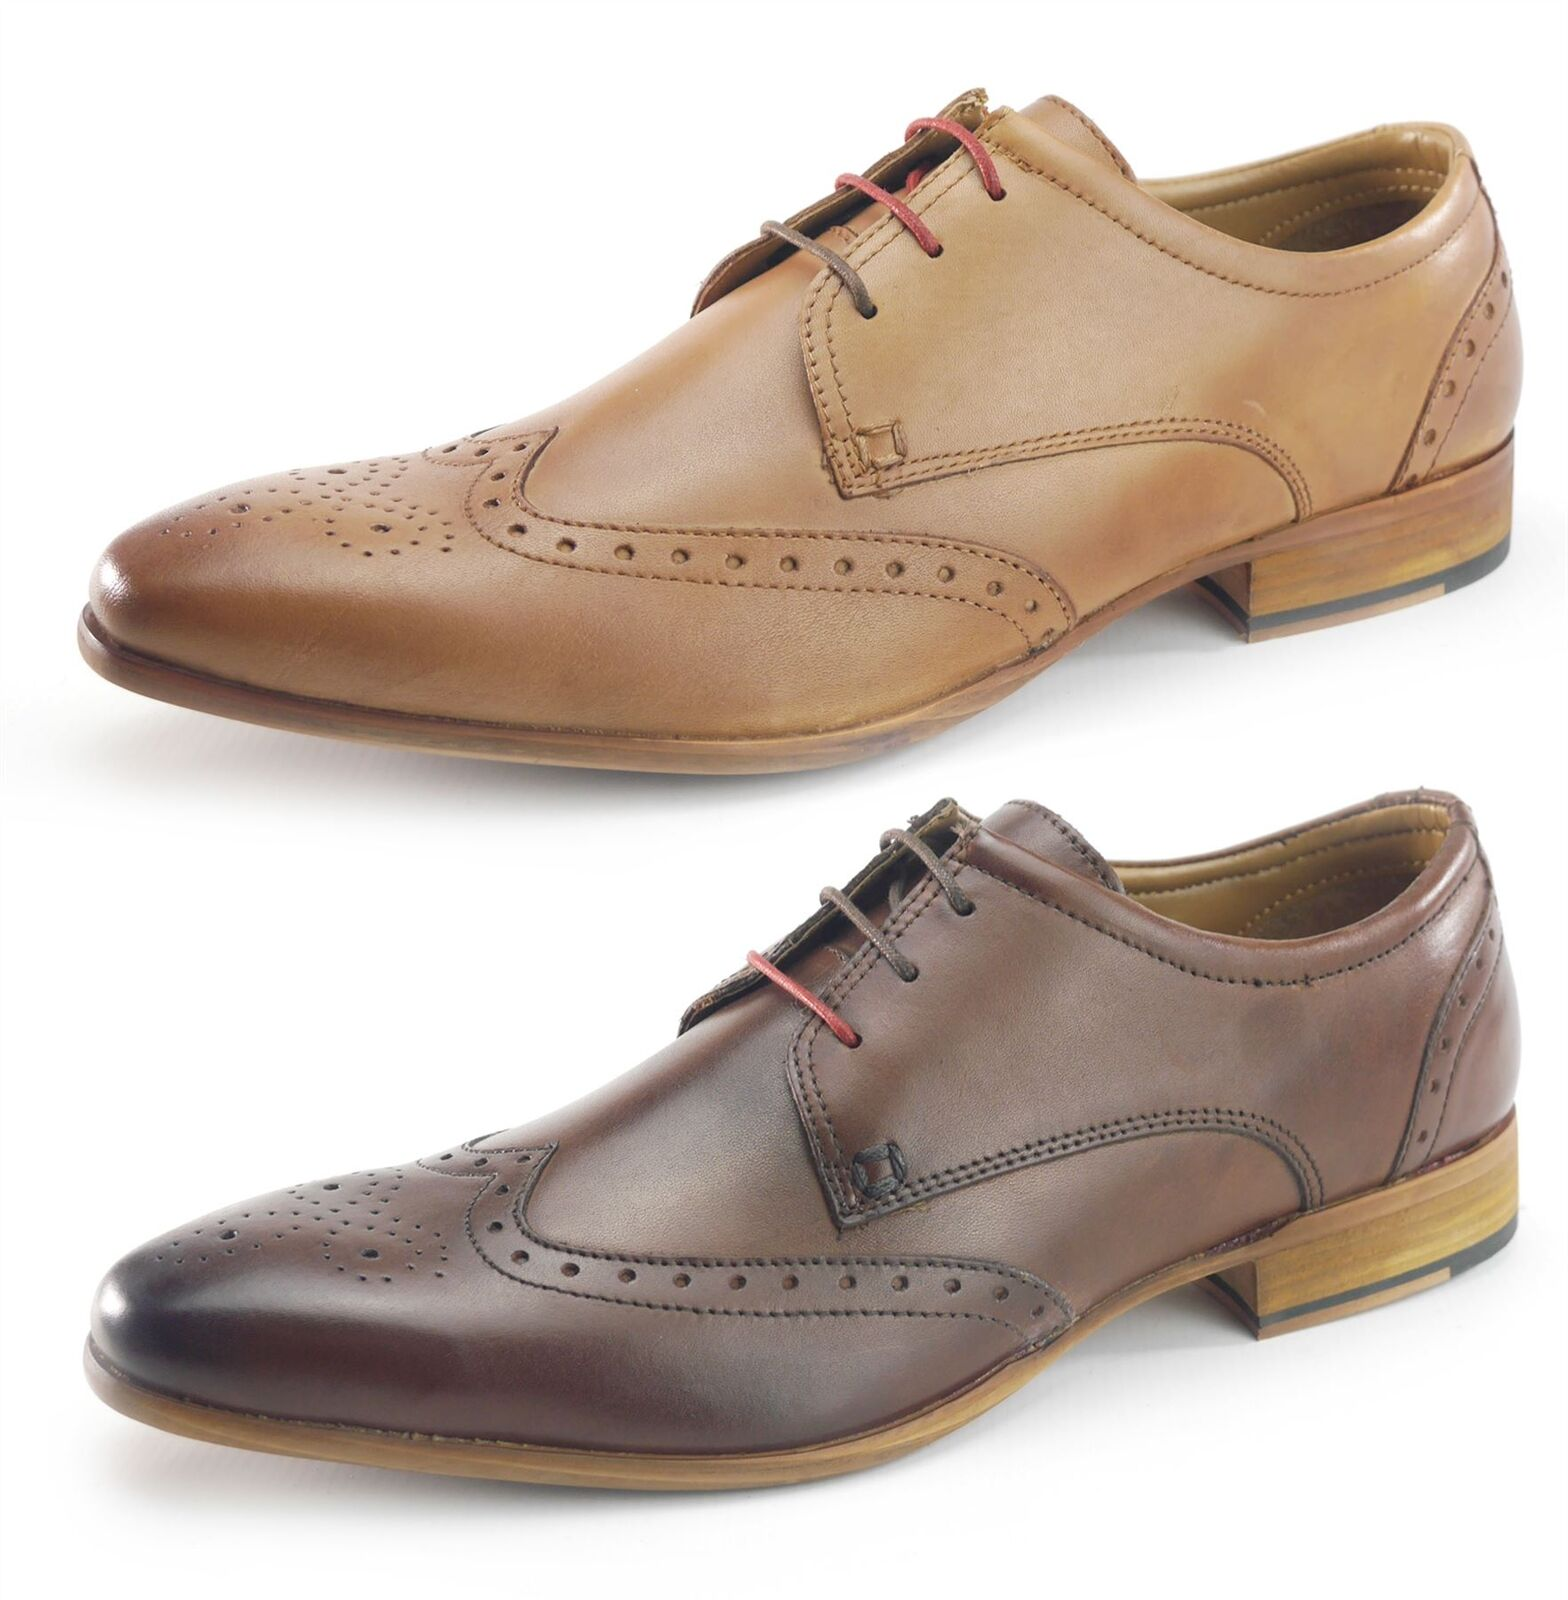 Frank James Leather Brogue 3 3 3 Eye Lace Up Mens schuhe Tan or braun d22a09